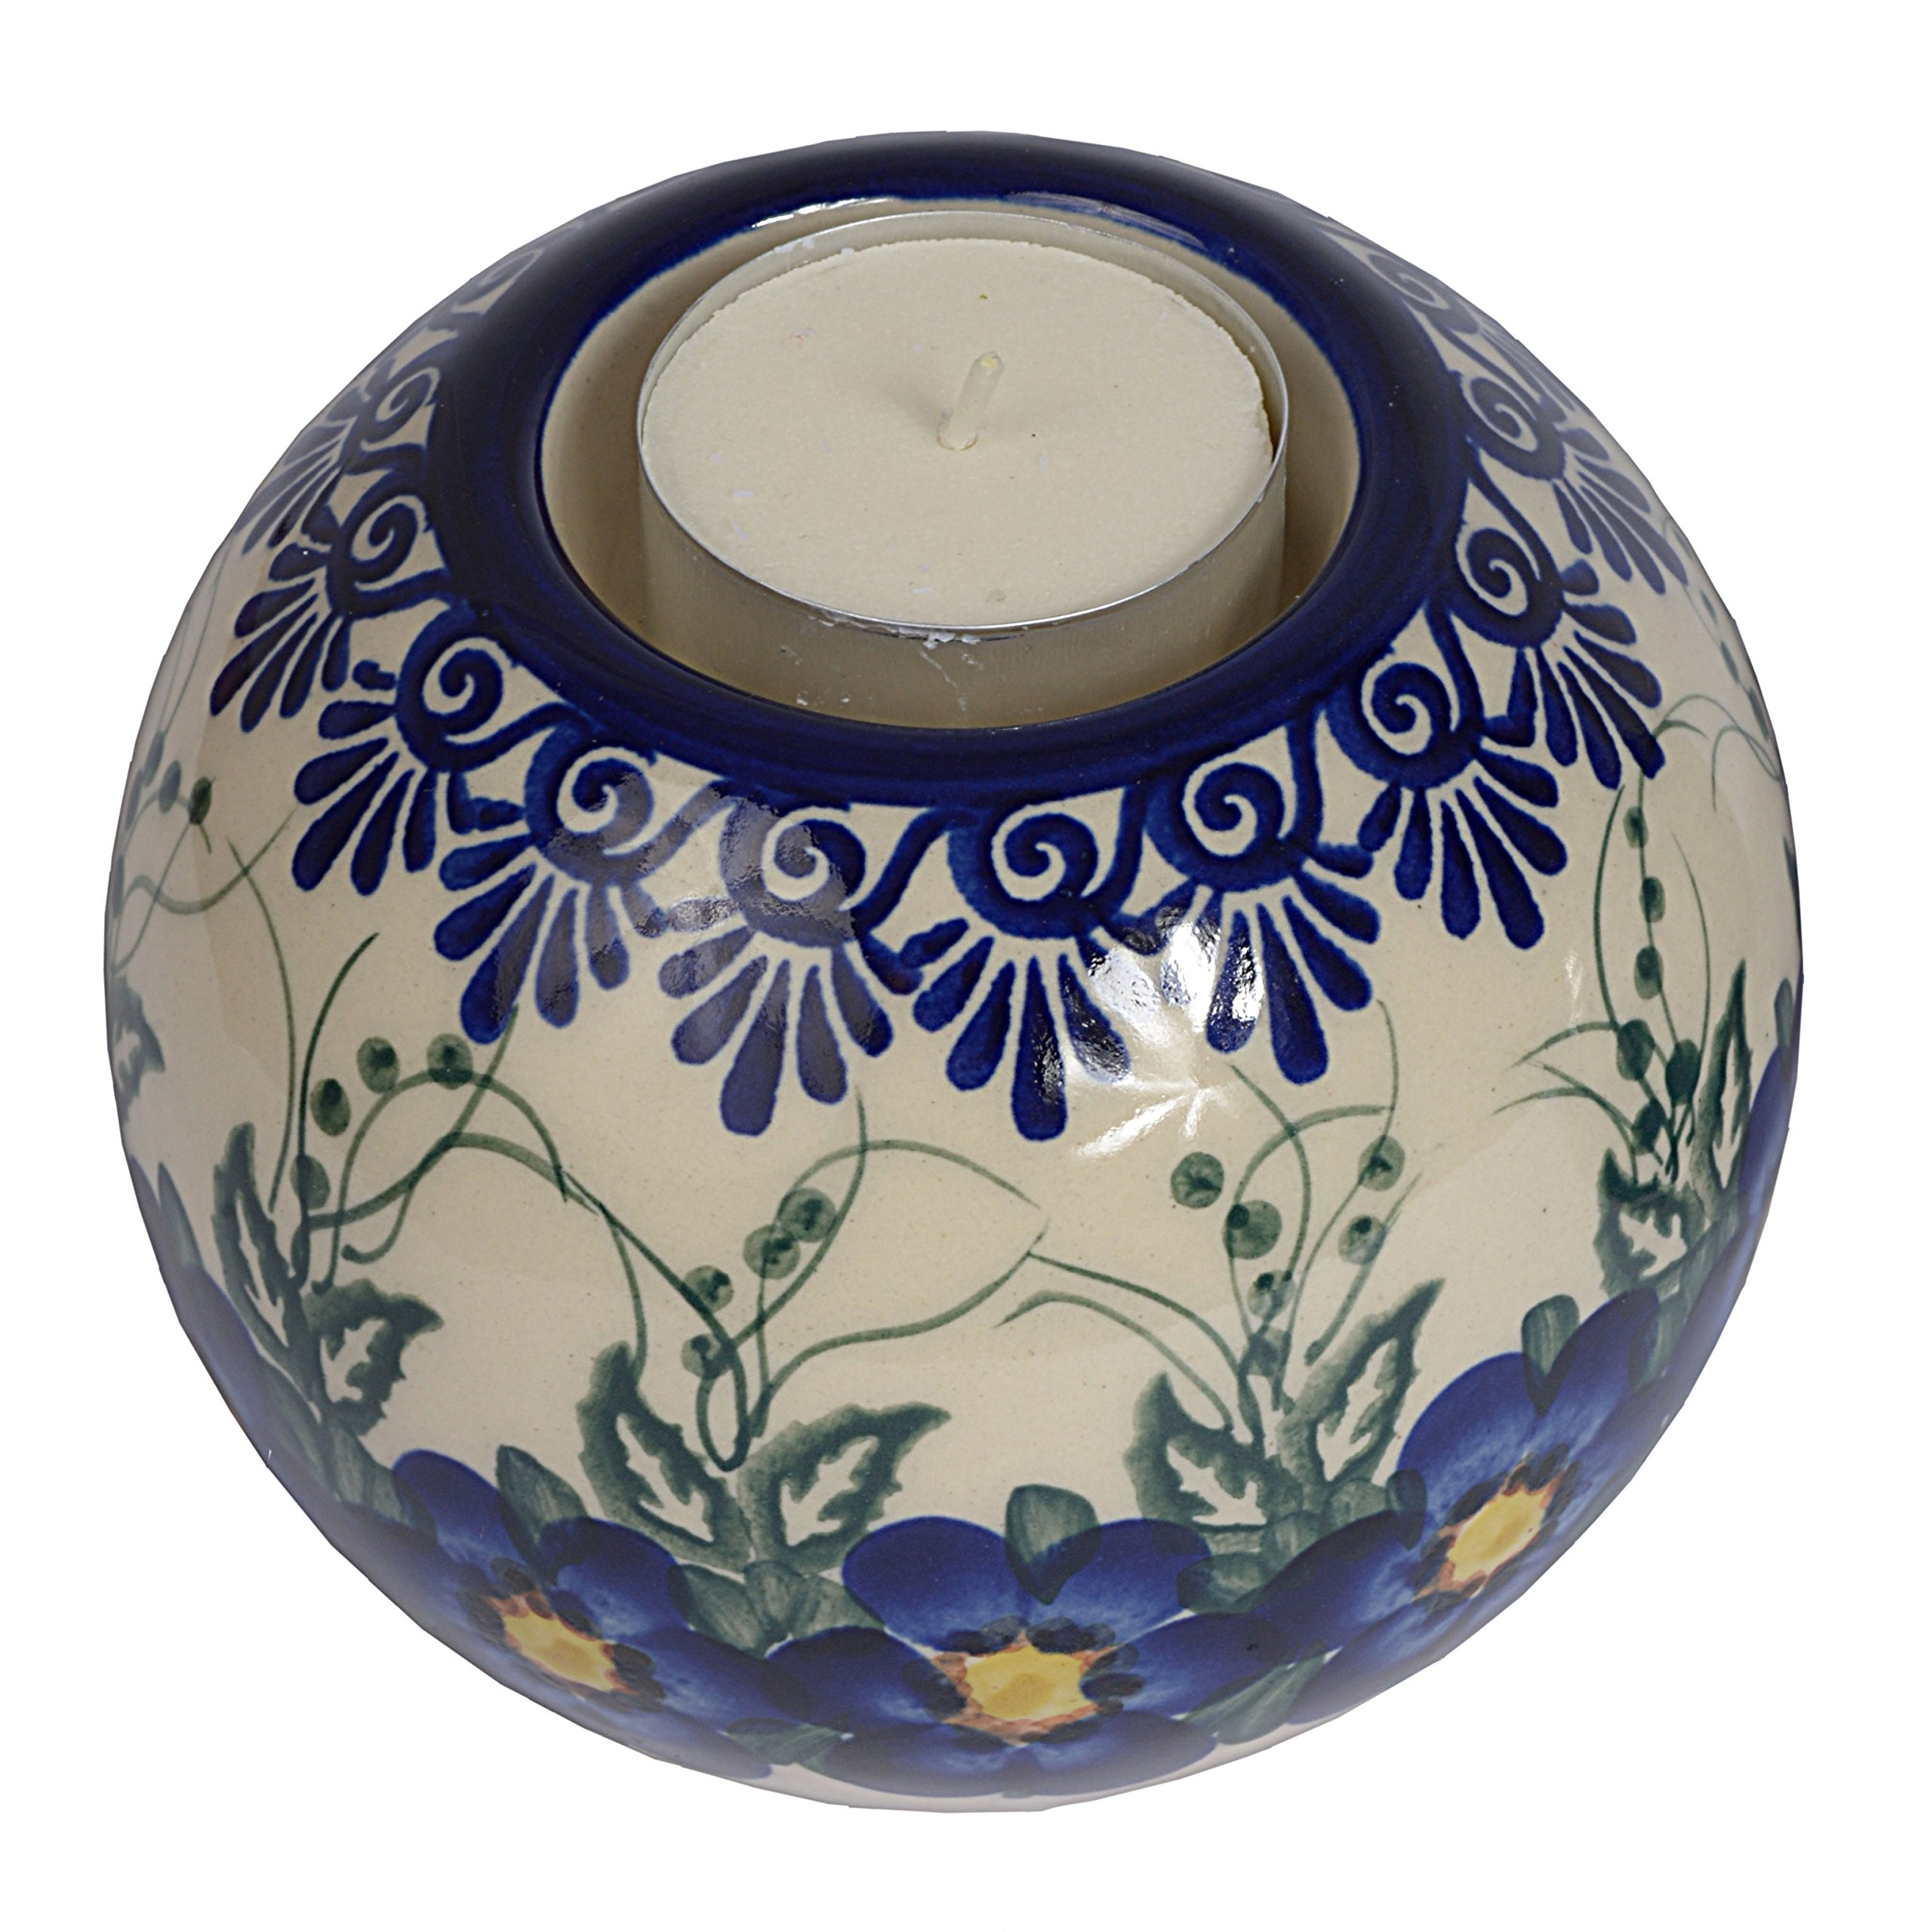 Traditional Polish Pottery, Handcrafted Ceramic Tea Light Candle Holder, diameter 10cm, Boleslawiec Style Pattern, D.503.PANSY